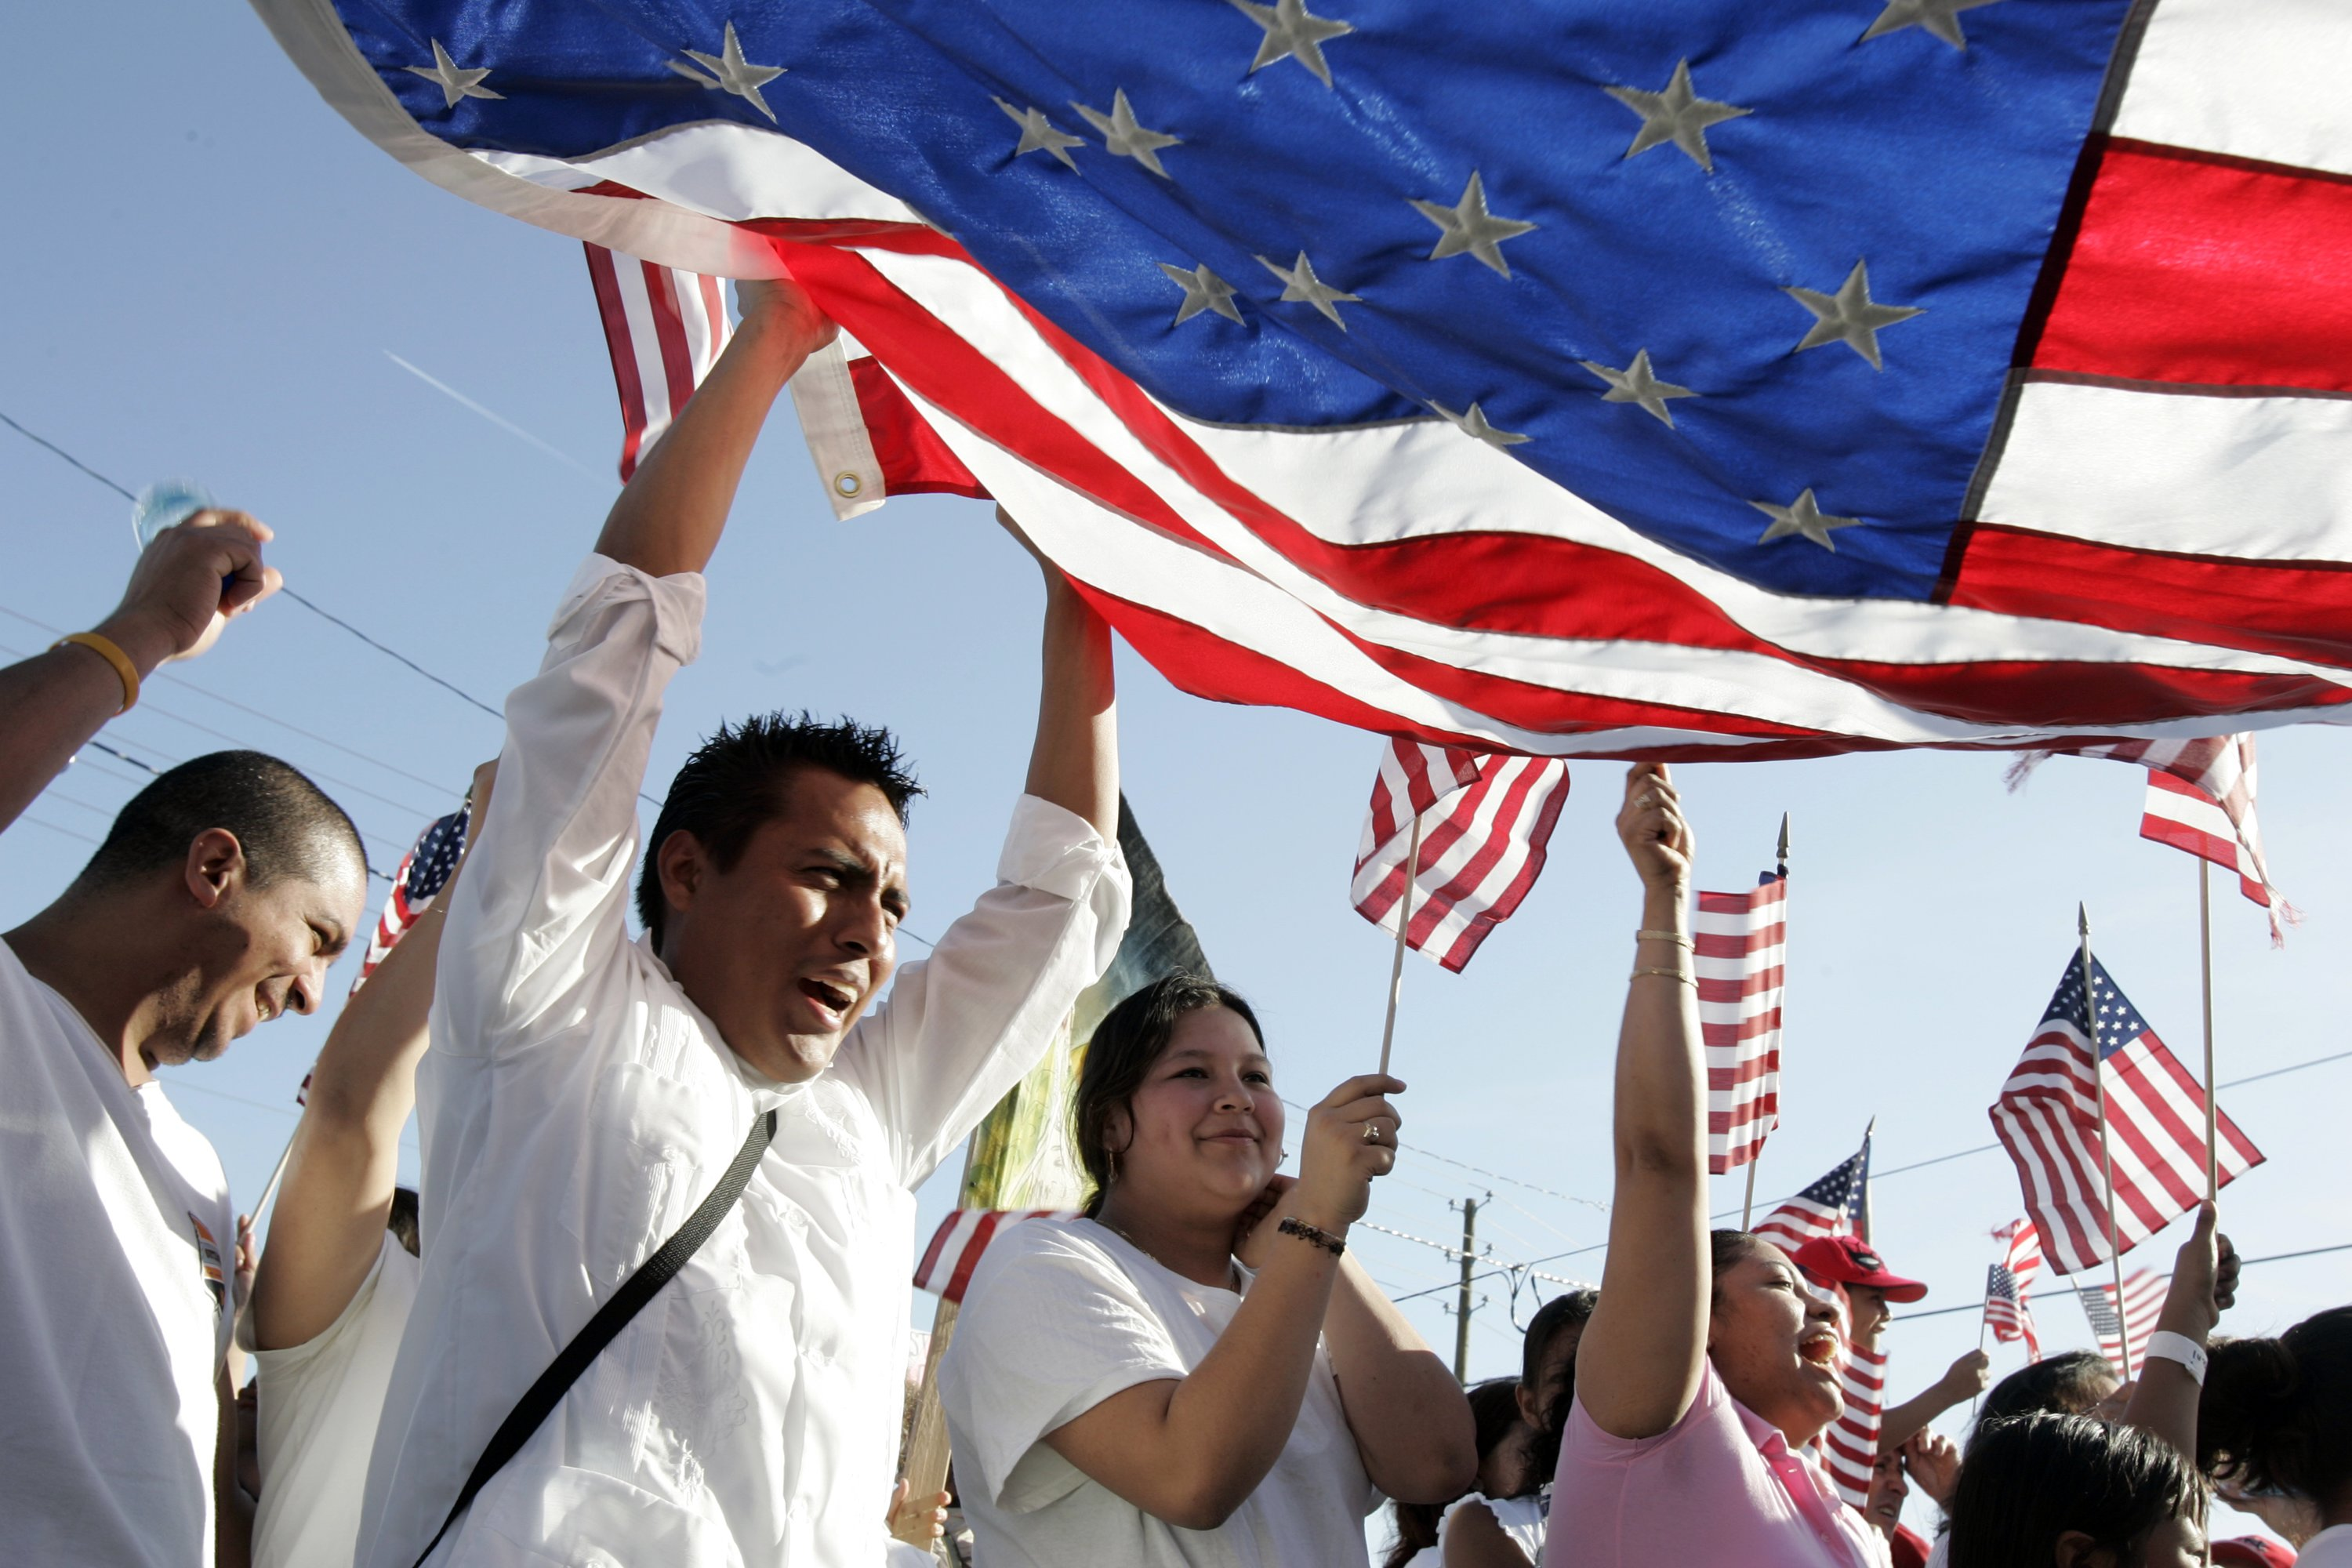 american immigrants The value of citizenship the united states has a long history of welcoming immigrants from all parts of the world america values the contributions of immigrants who continue to enrich this country and preserve its legacy as a land of freedom and opportunity.